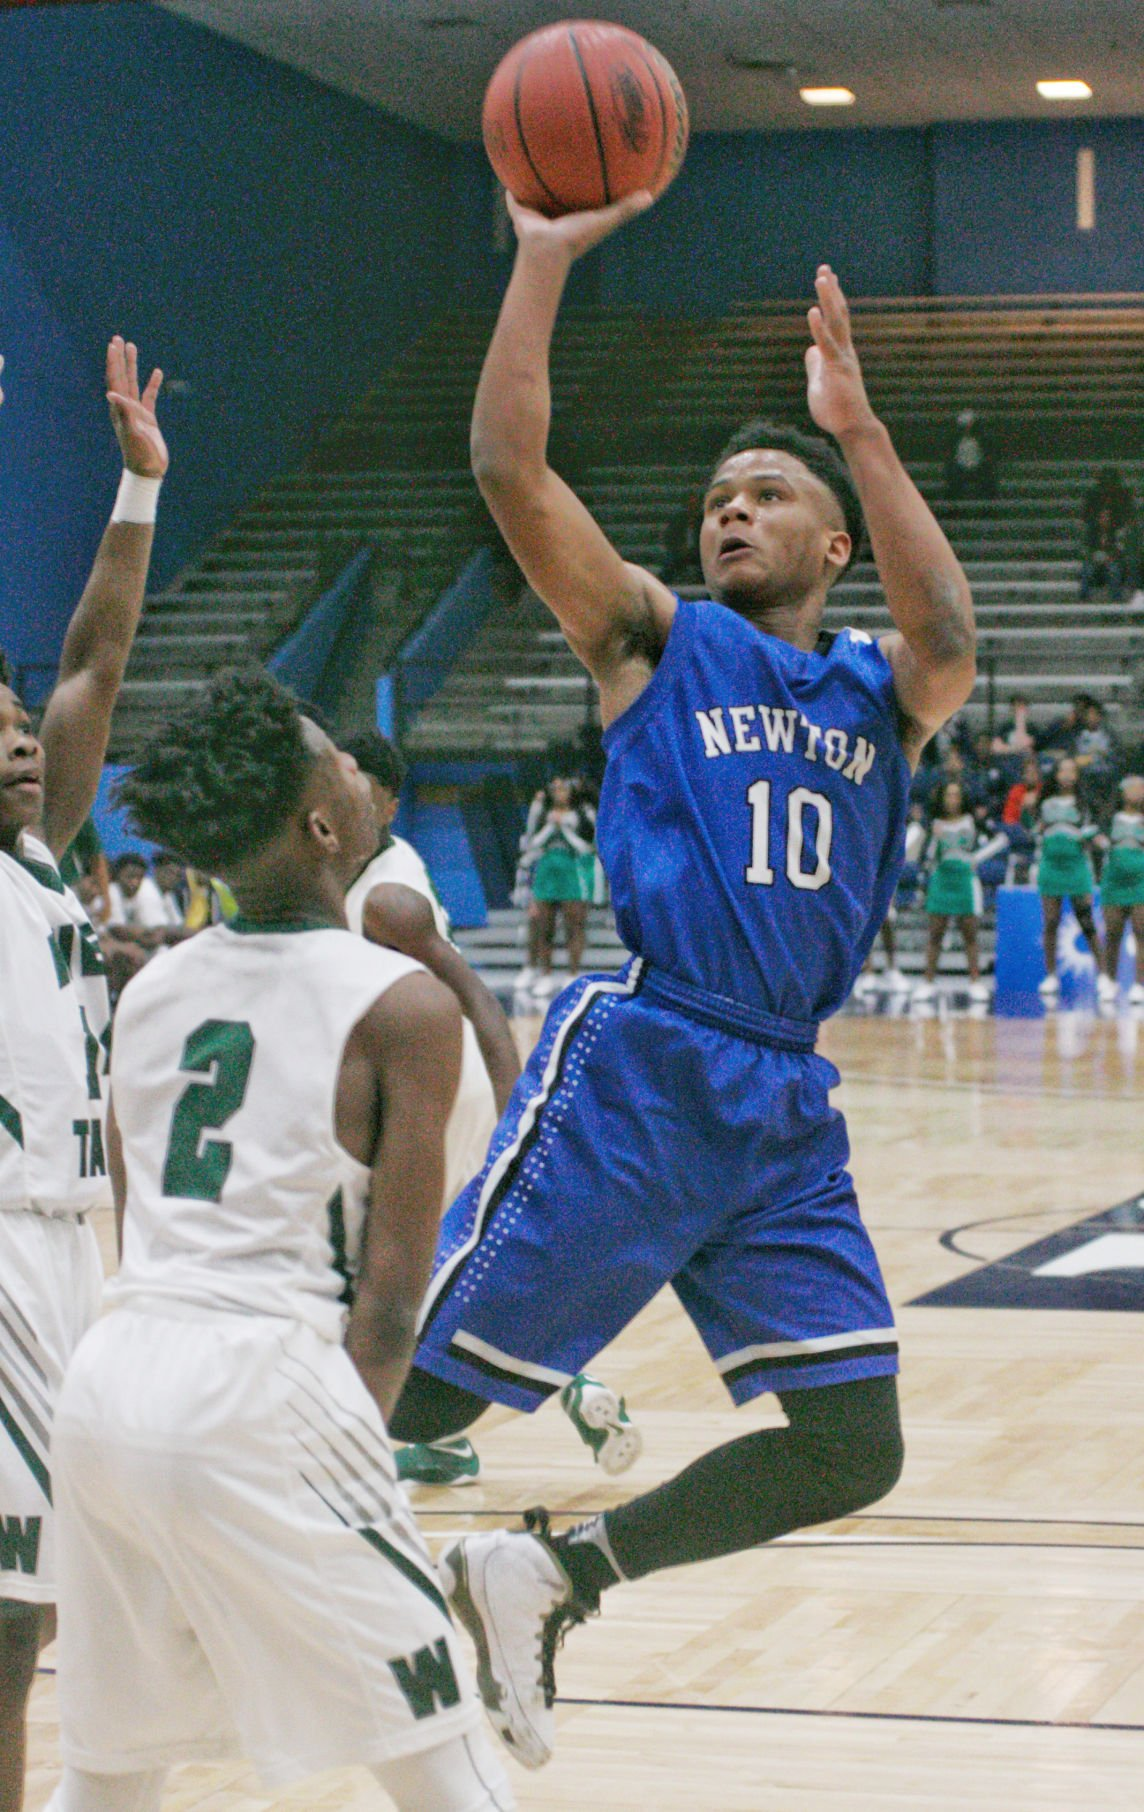 prep basketball newton boys fall in class 2a quarterfinals prep basketball newton boys fall in class 2a quarterfinals